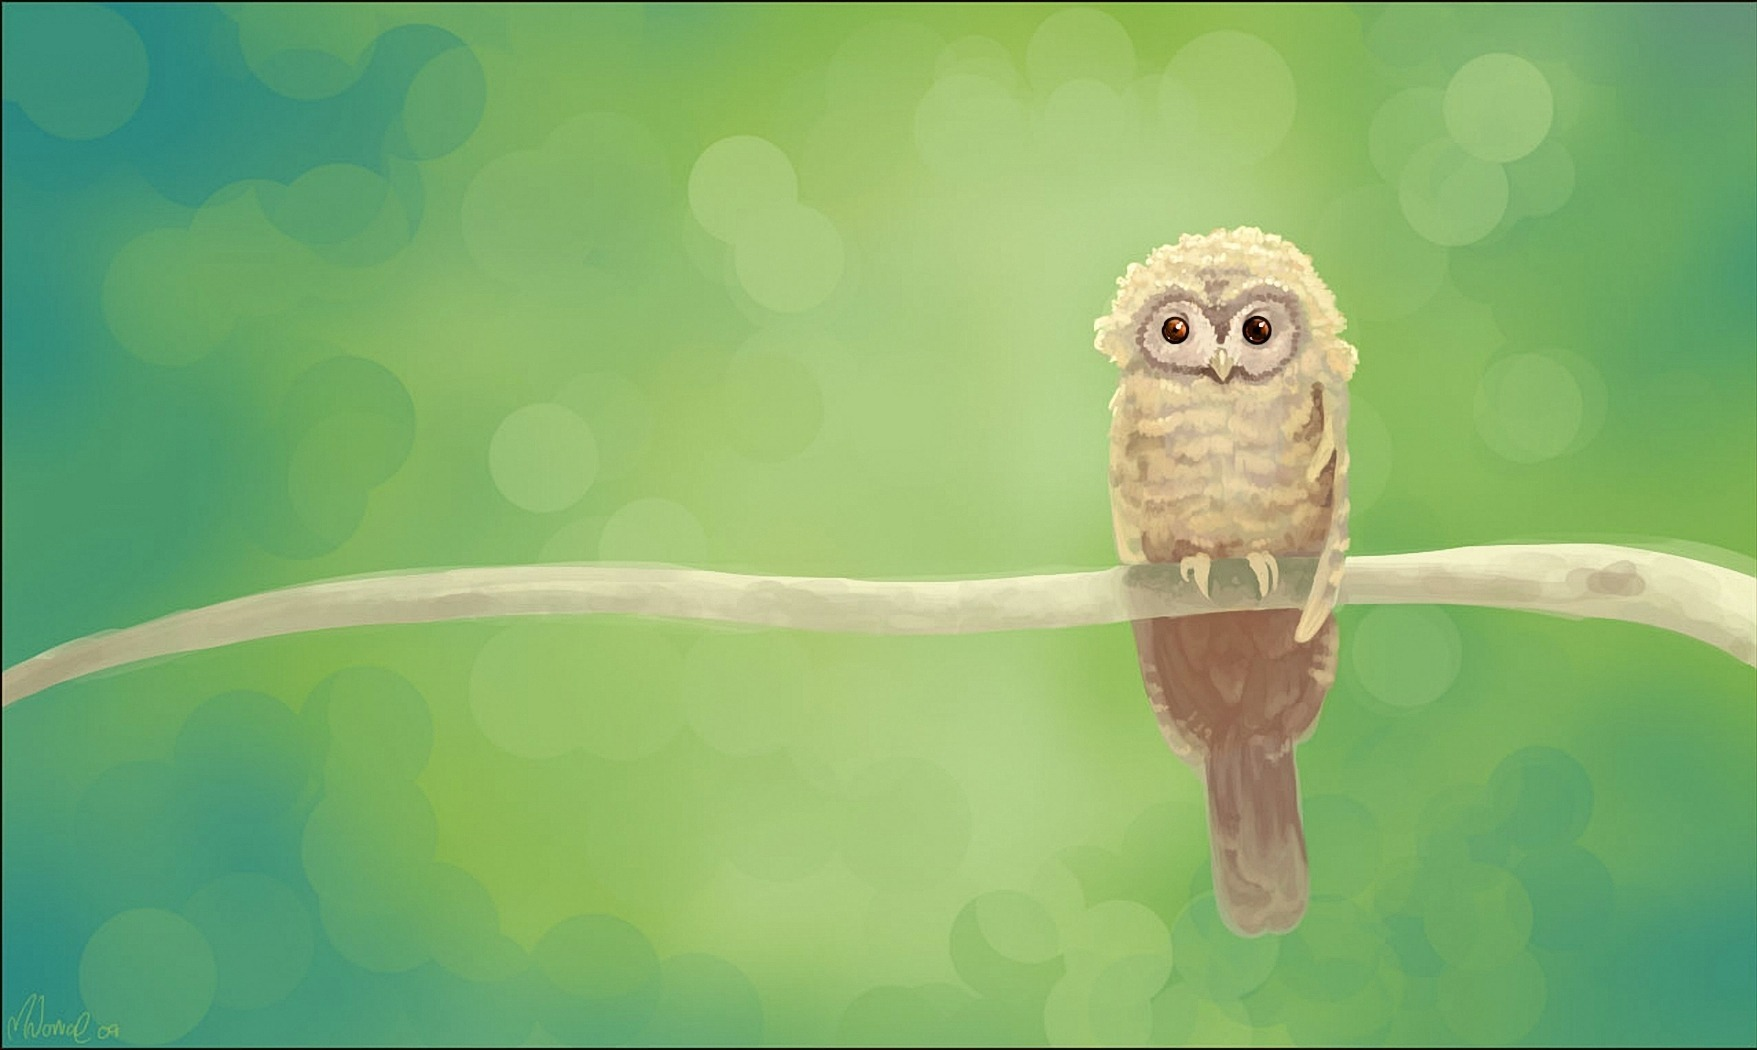 owl wallpaper desktop 7 - photo #33